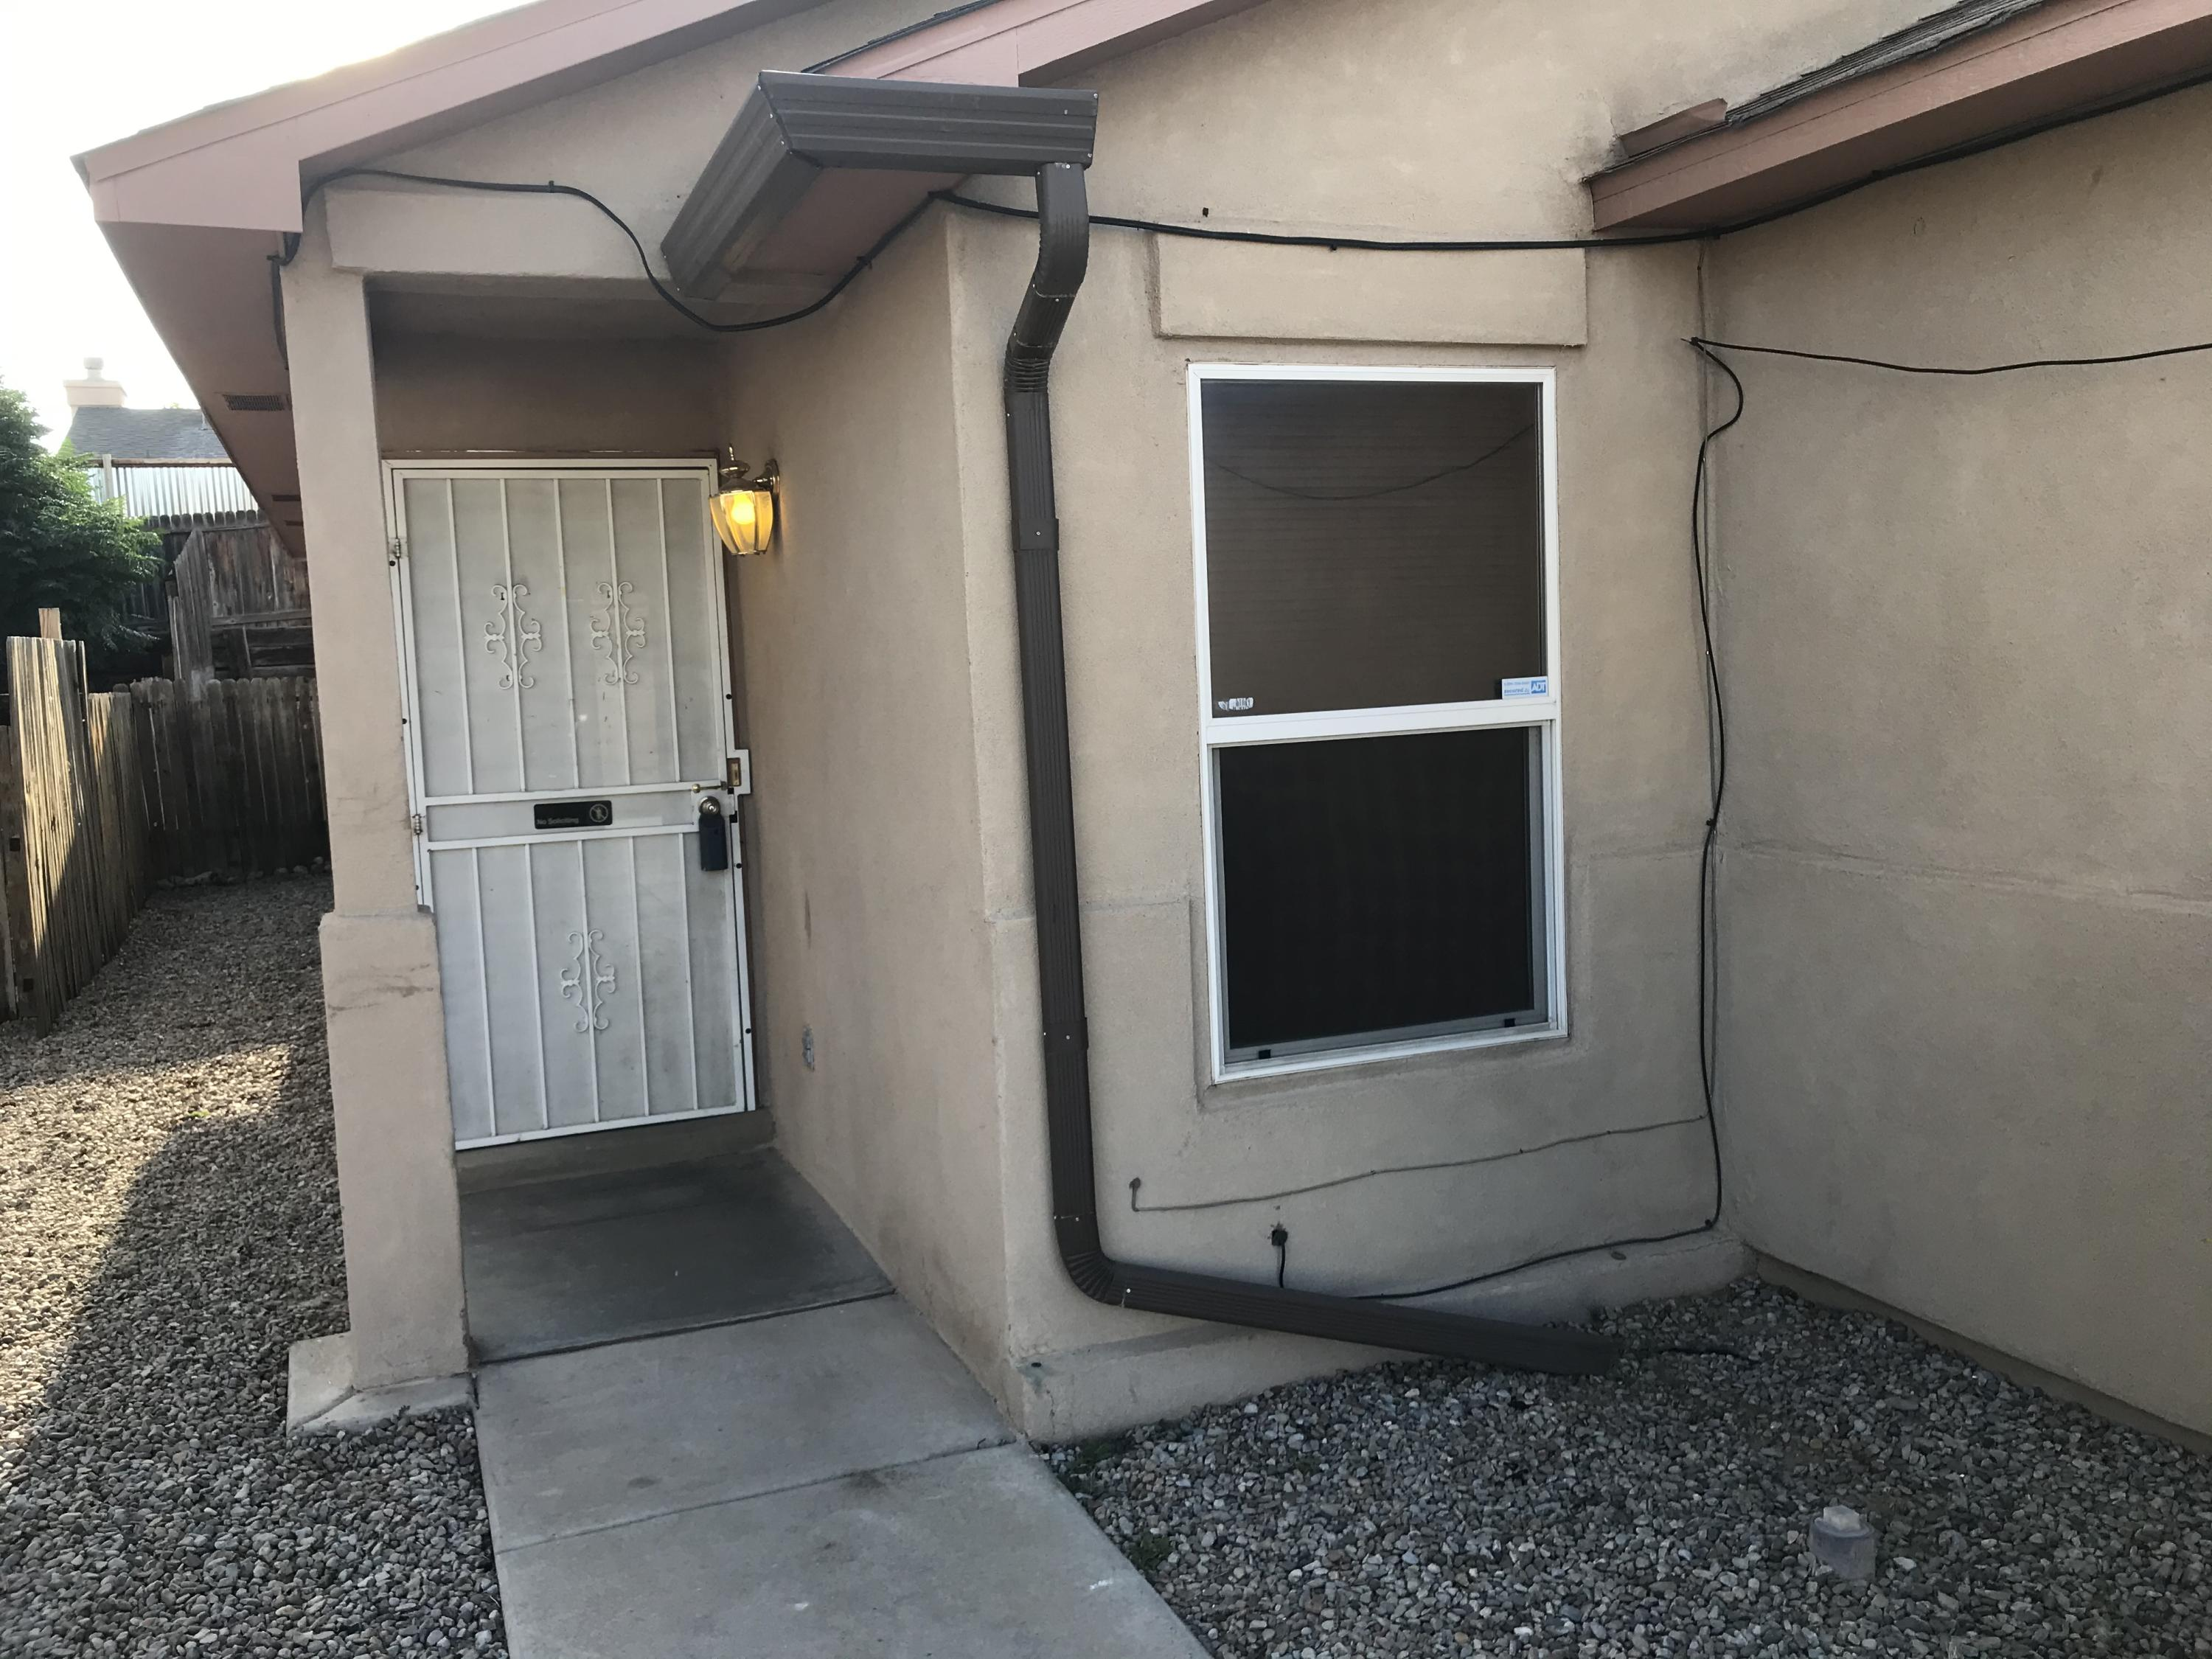 Nice update on this home in Southwest Albuquerque -- Ready for you!  This beauty is in a quiet neighborhood within walking distance to an amazing park with tennis courts.  There is fresh paint throughout the home. Open living space and 2-car garage make this the perfect place to call home. Low maintenance landscaping gives time to enjoy life and ''down time''.  Home has been professionally ''fogged''. Stucco repair coloration still in process -- please be patient.   Please observe COVID-19 safety​​‌​​​​‌​​‌‌​‌‌‌​​‌‌​‌‌‌​​‌‌​‌‌‌ procedures.